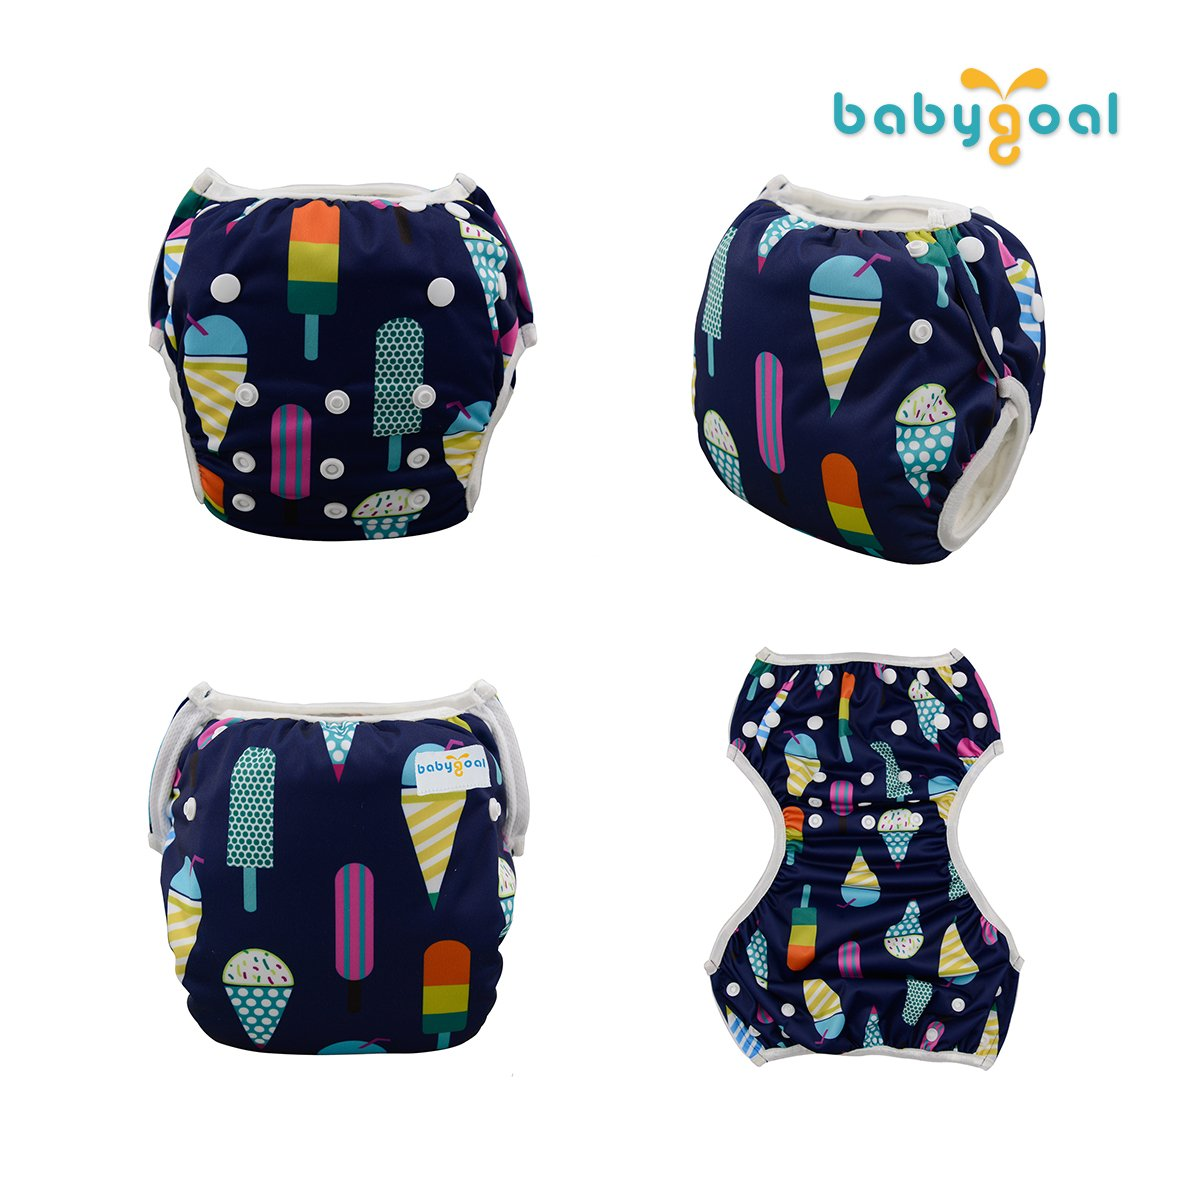 babygoal Reusable Swim Diaper One Size Adjustable and Washable Swim Underwear Fits 0-2 Years and Swimming Lessons 3SD03